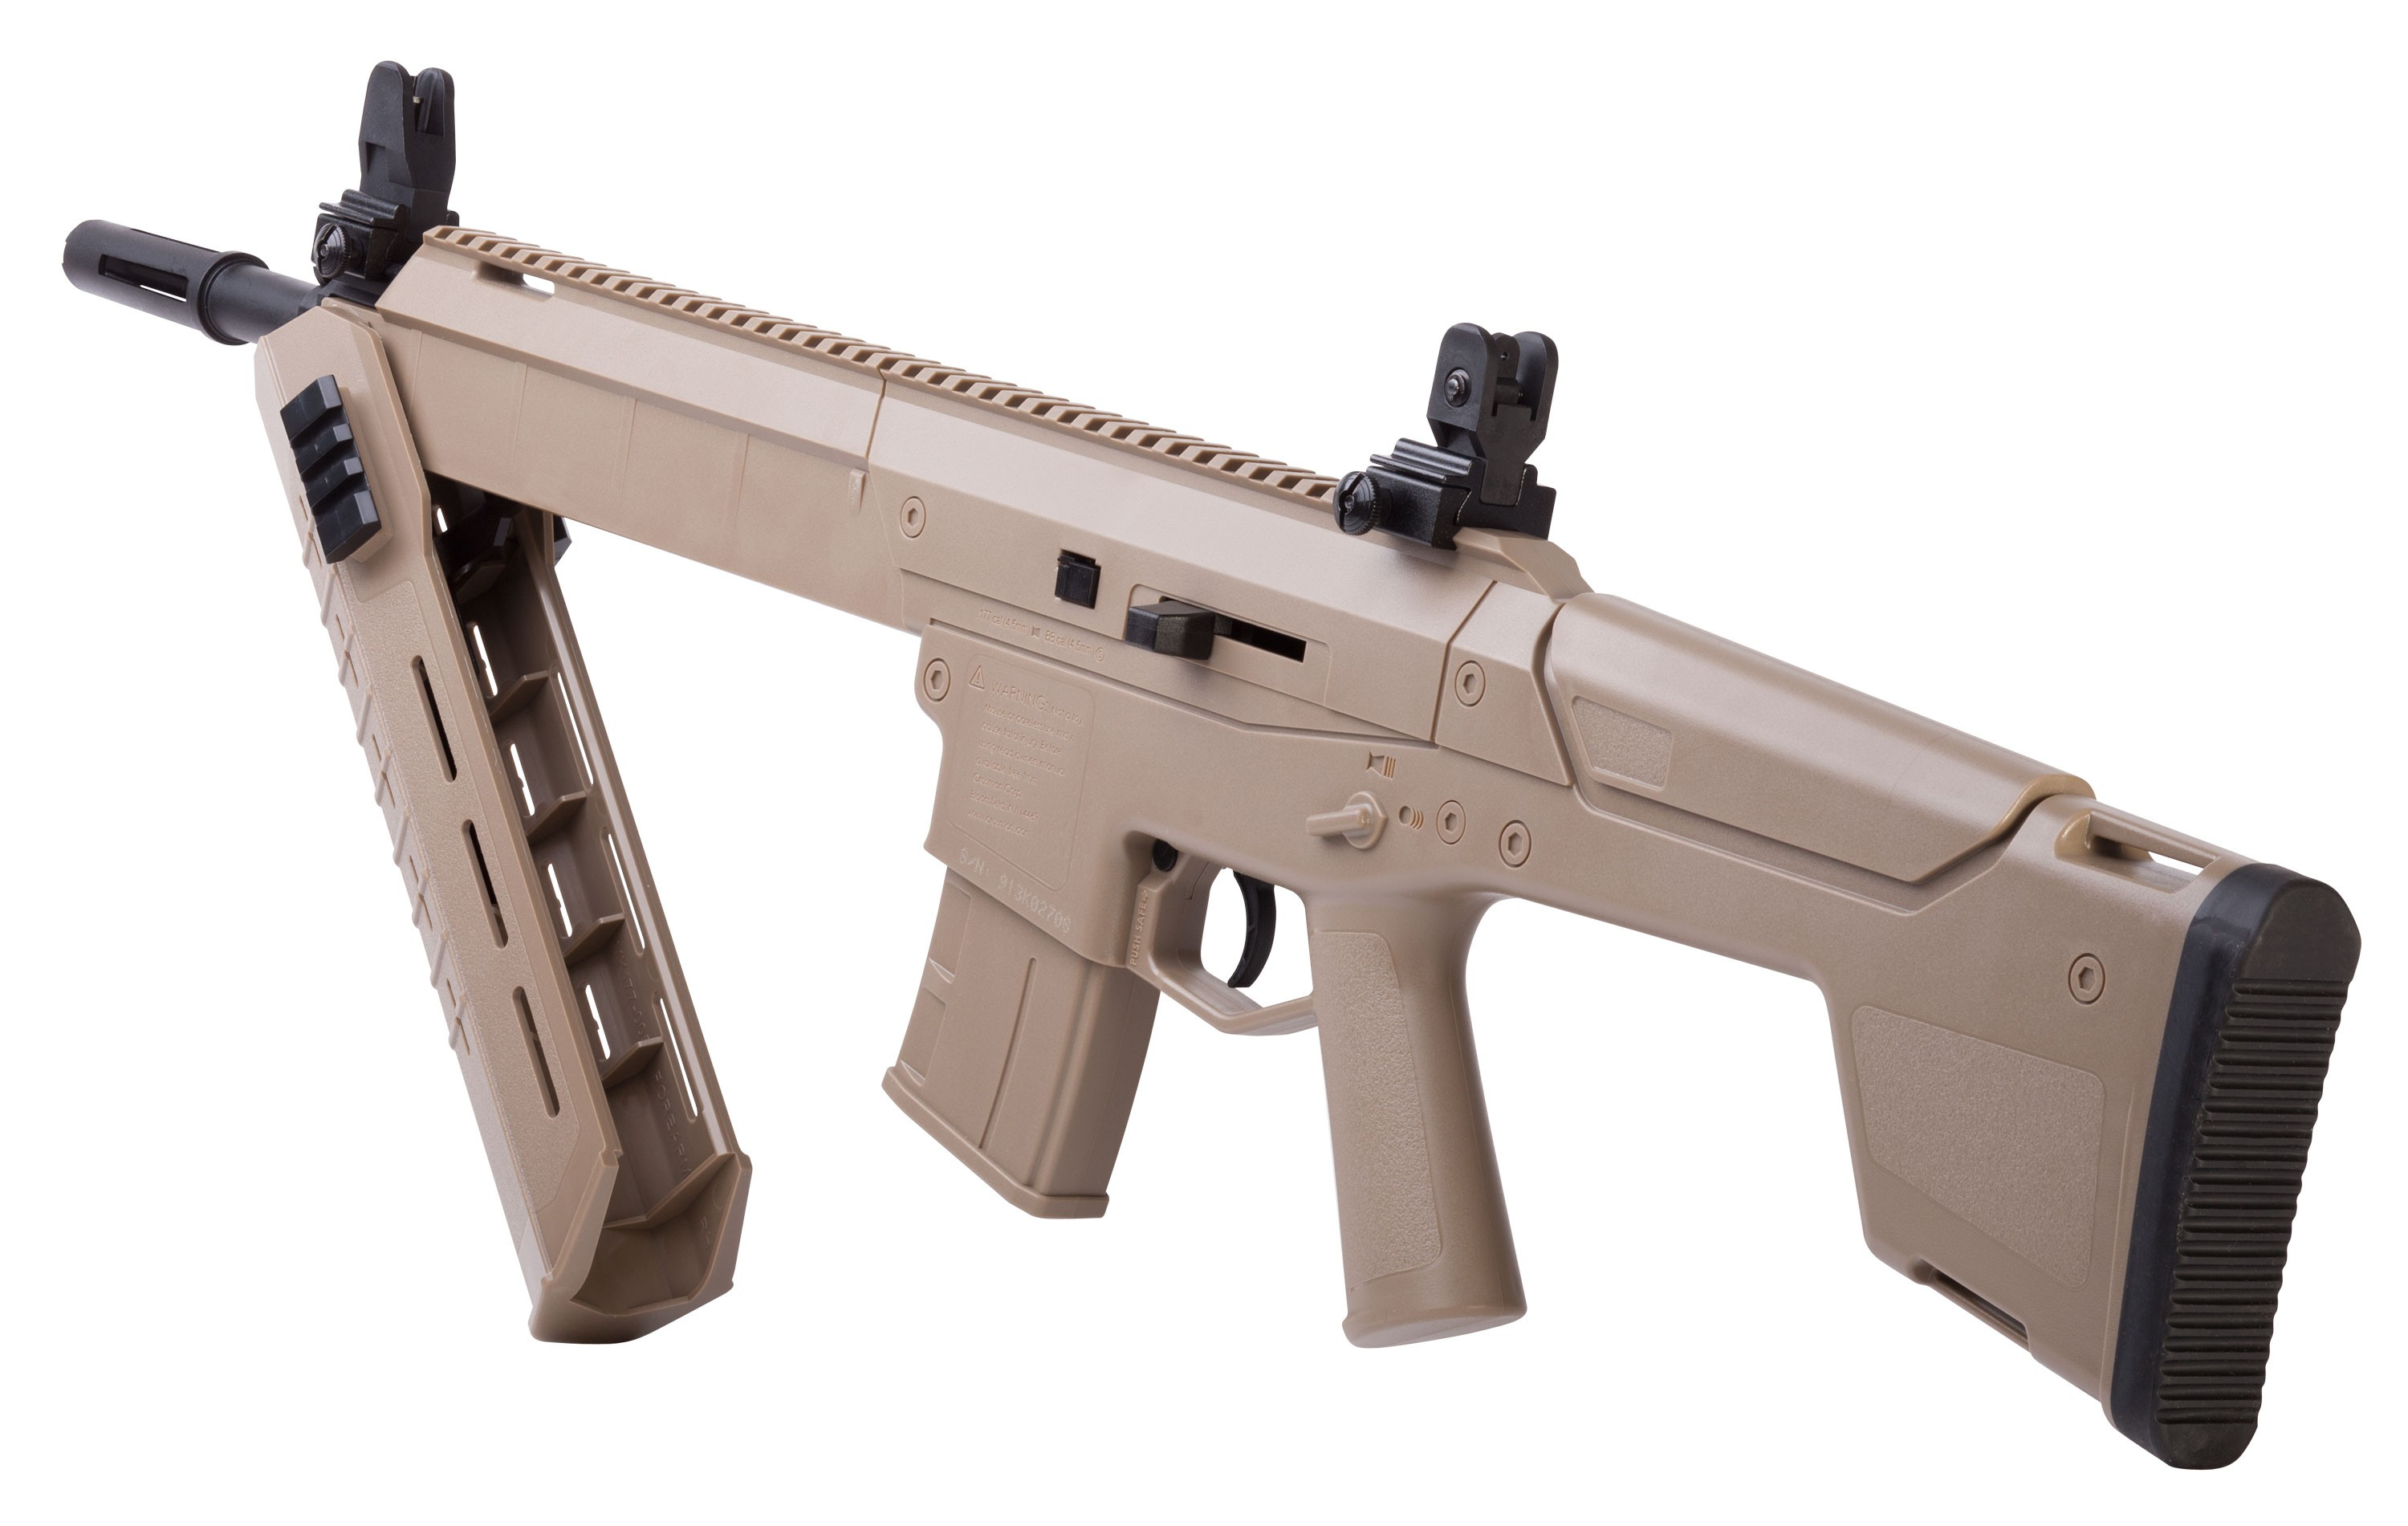 crosman mk-177 tan tactical air rifle | crosman mk-177 tan tactical air rifle  review